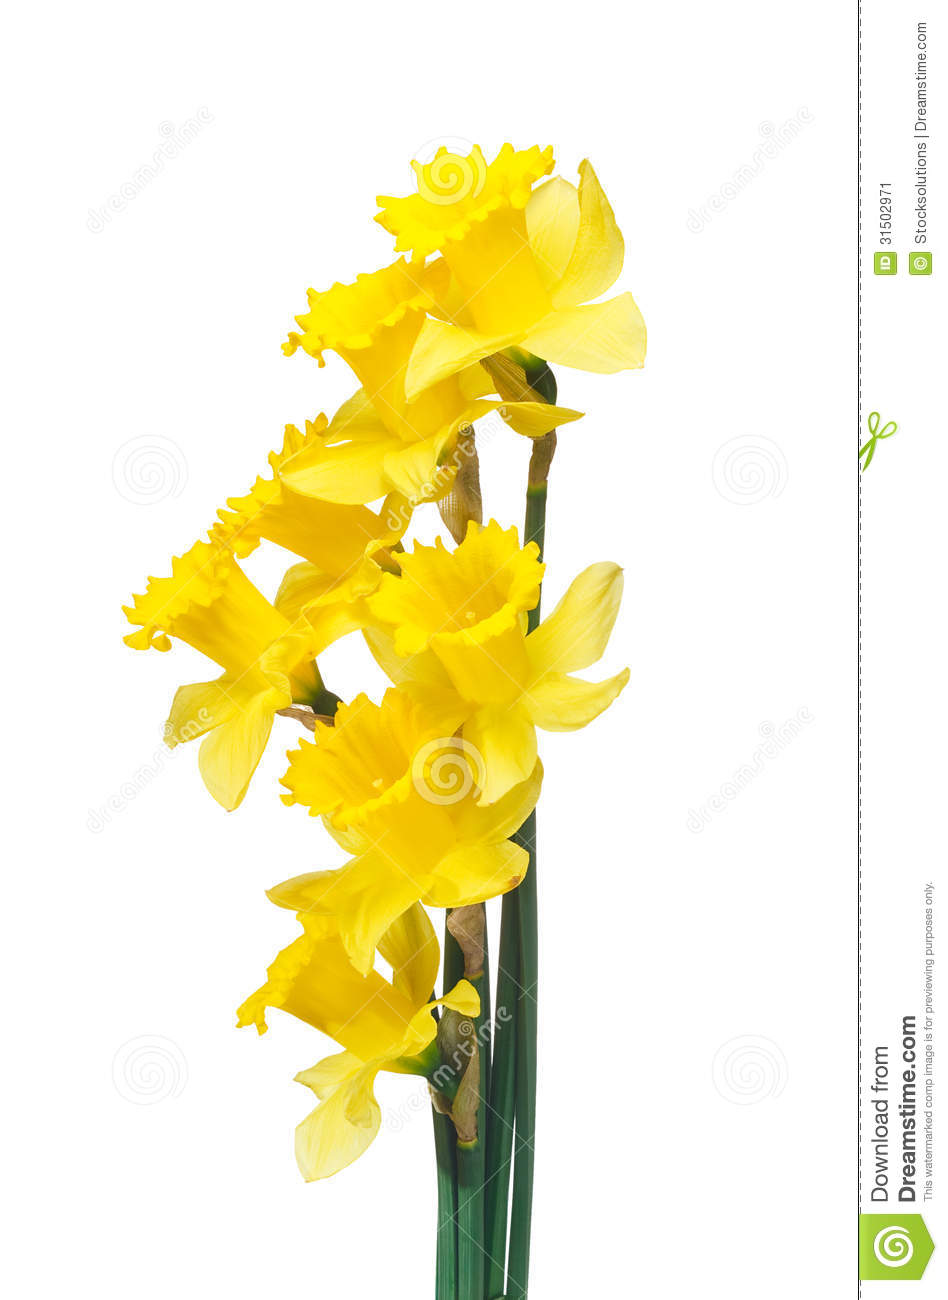 Daffodil Clip Art No Background - Floral delivery